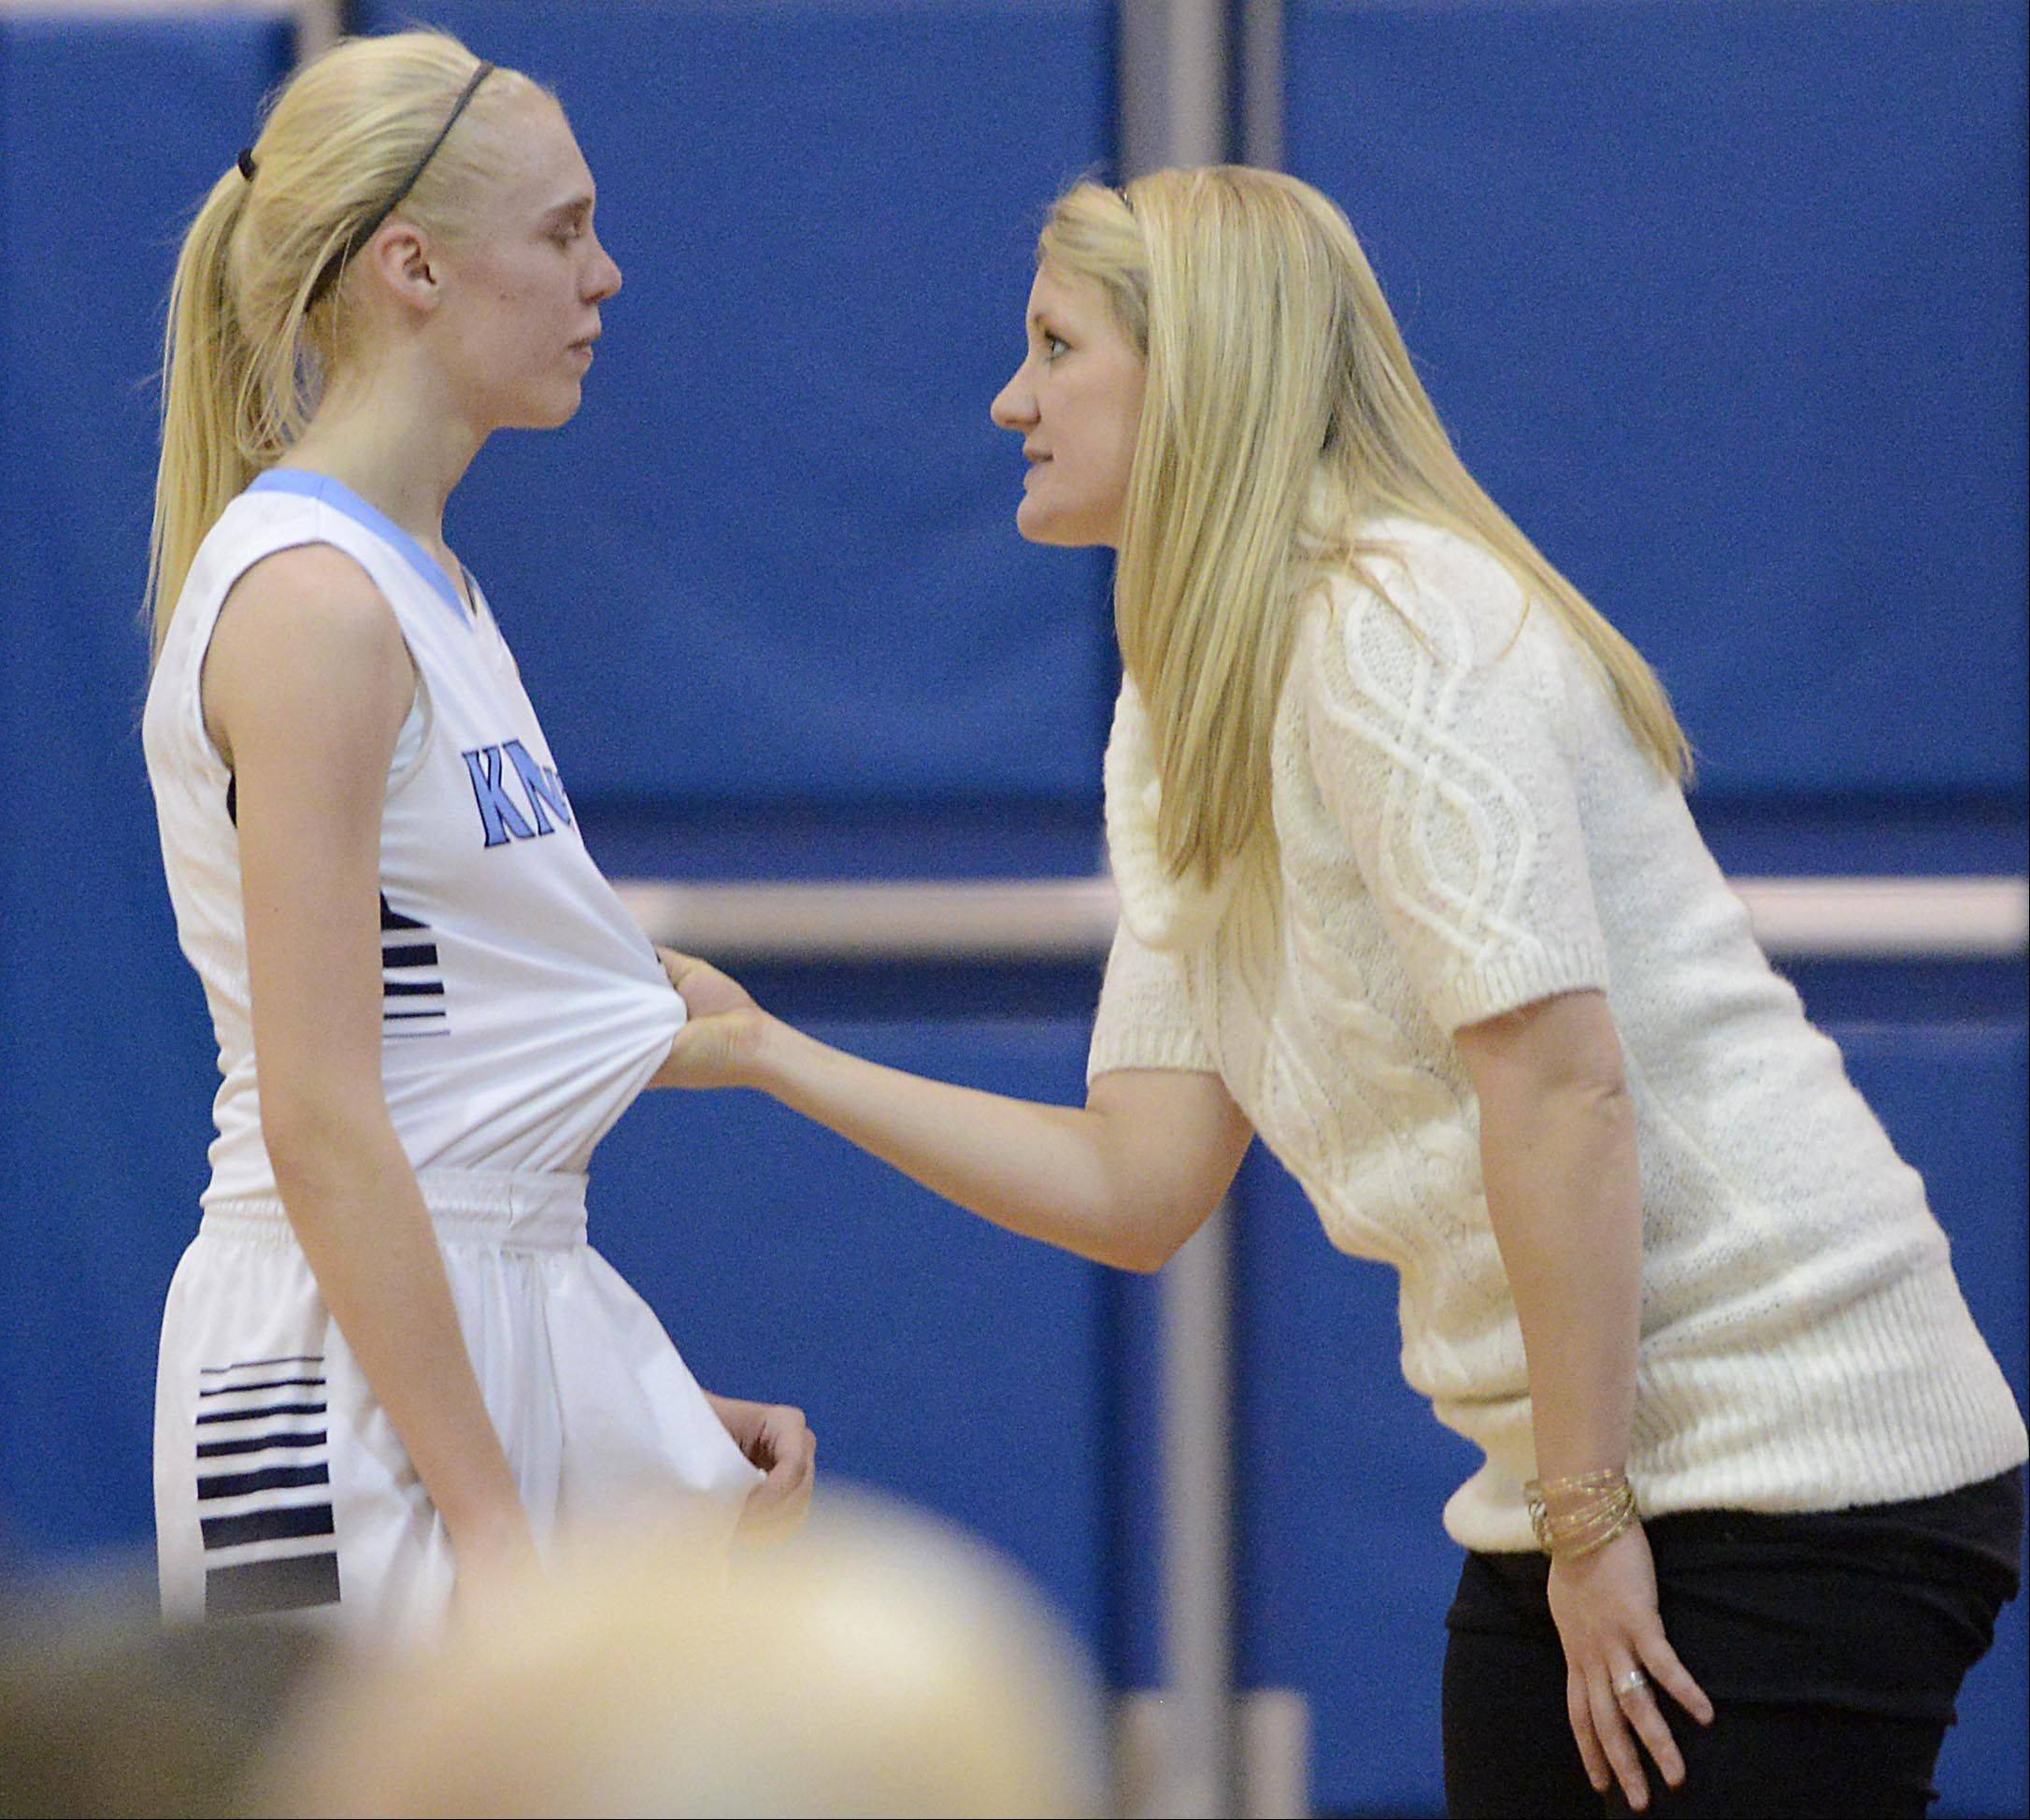 Prospect coach Ashley Graham talks with Haley Will during the Knight's meeting with New Trier in the championship game of the 31st Annual Charger Classic at Dundee-Crown on Monday.